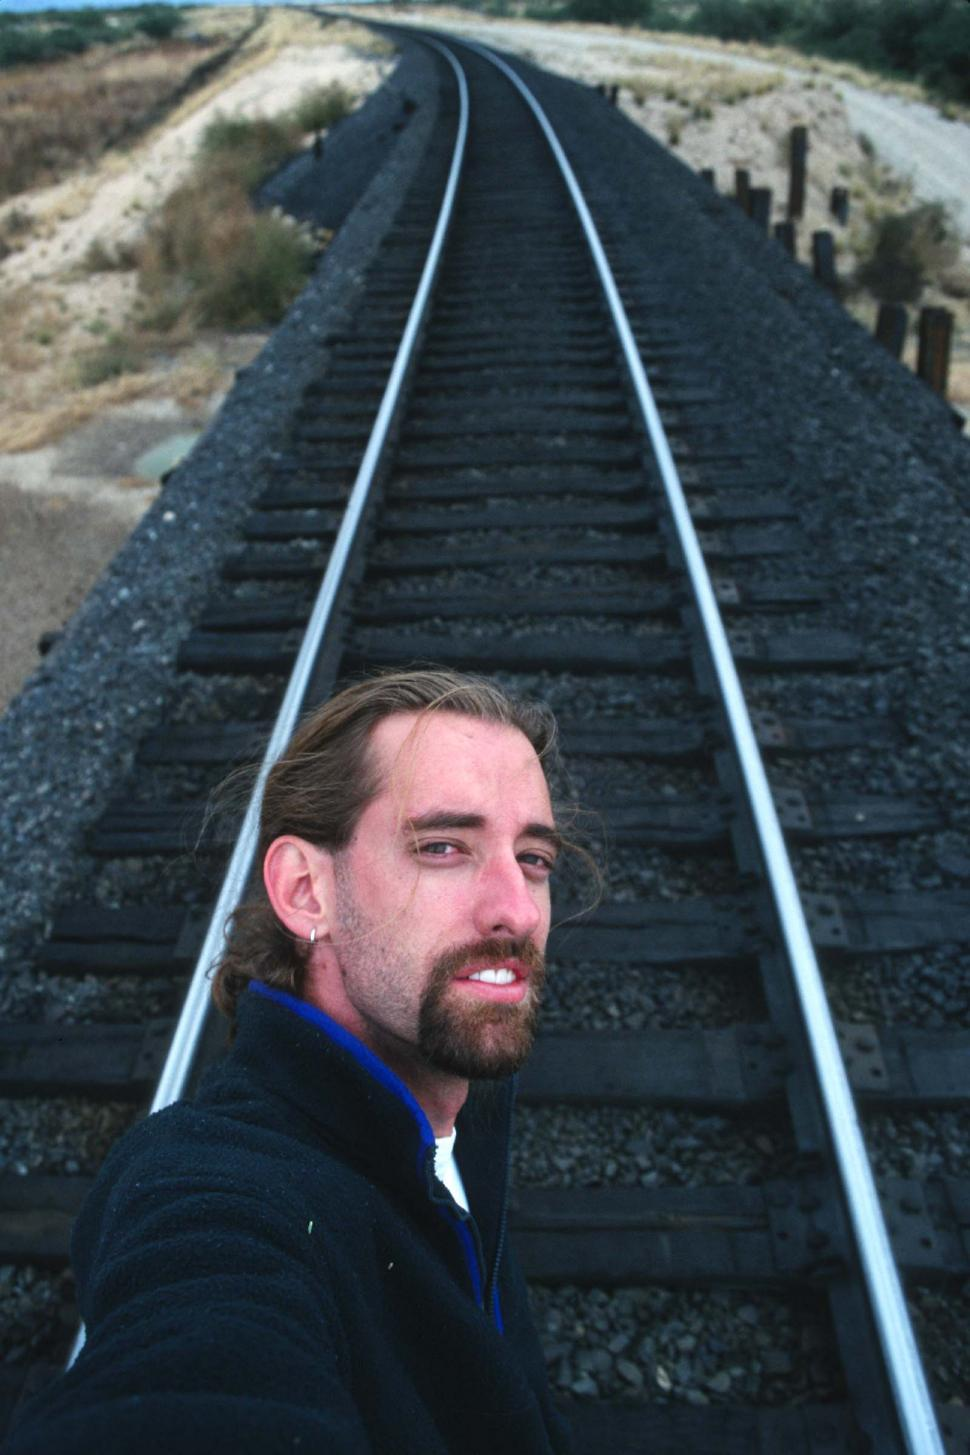 Download Free Stock HD Photo of Man on tracks Online